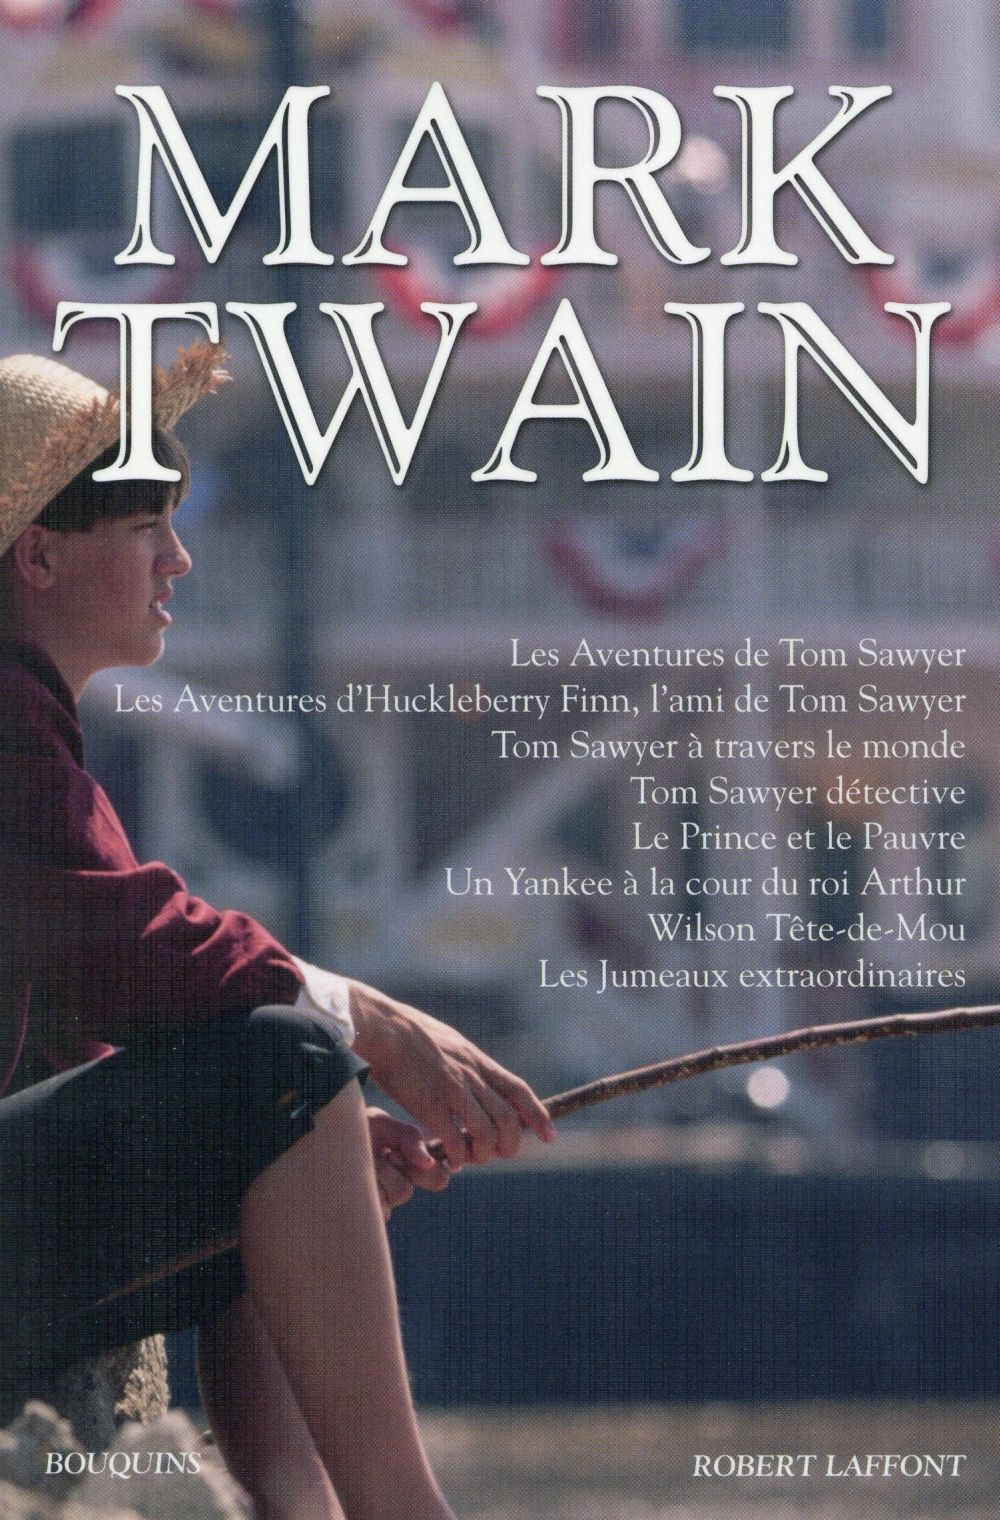 LES AVENTURES DE TOM SAWYER - NE